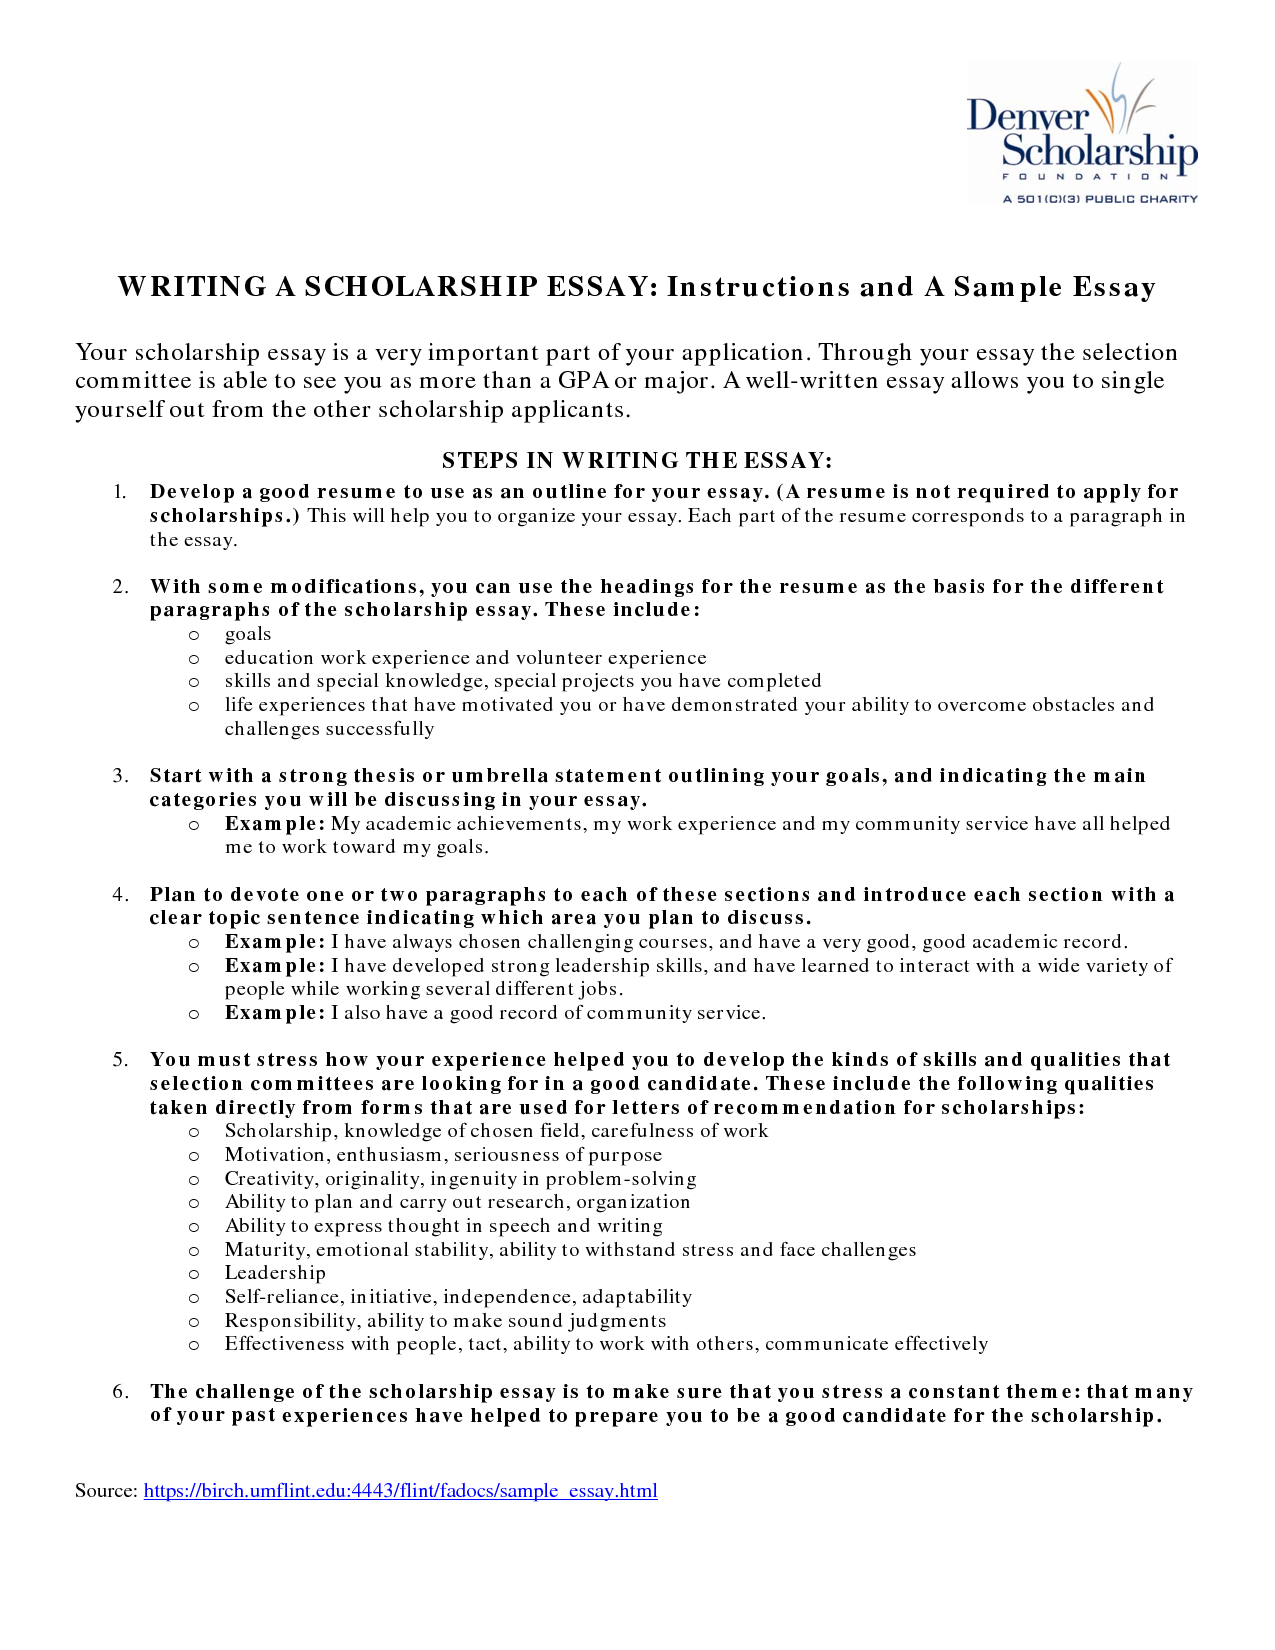 Example Thesis Statement Essay College Essay Writers Digest Competition Unioncom English Remorba Essays Term Papers also Proposal Essay Topic List College Essay Writers Digest Competition Unioncom English Remorba  Compare And Contrast Essay About High School And College